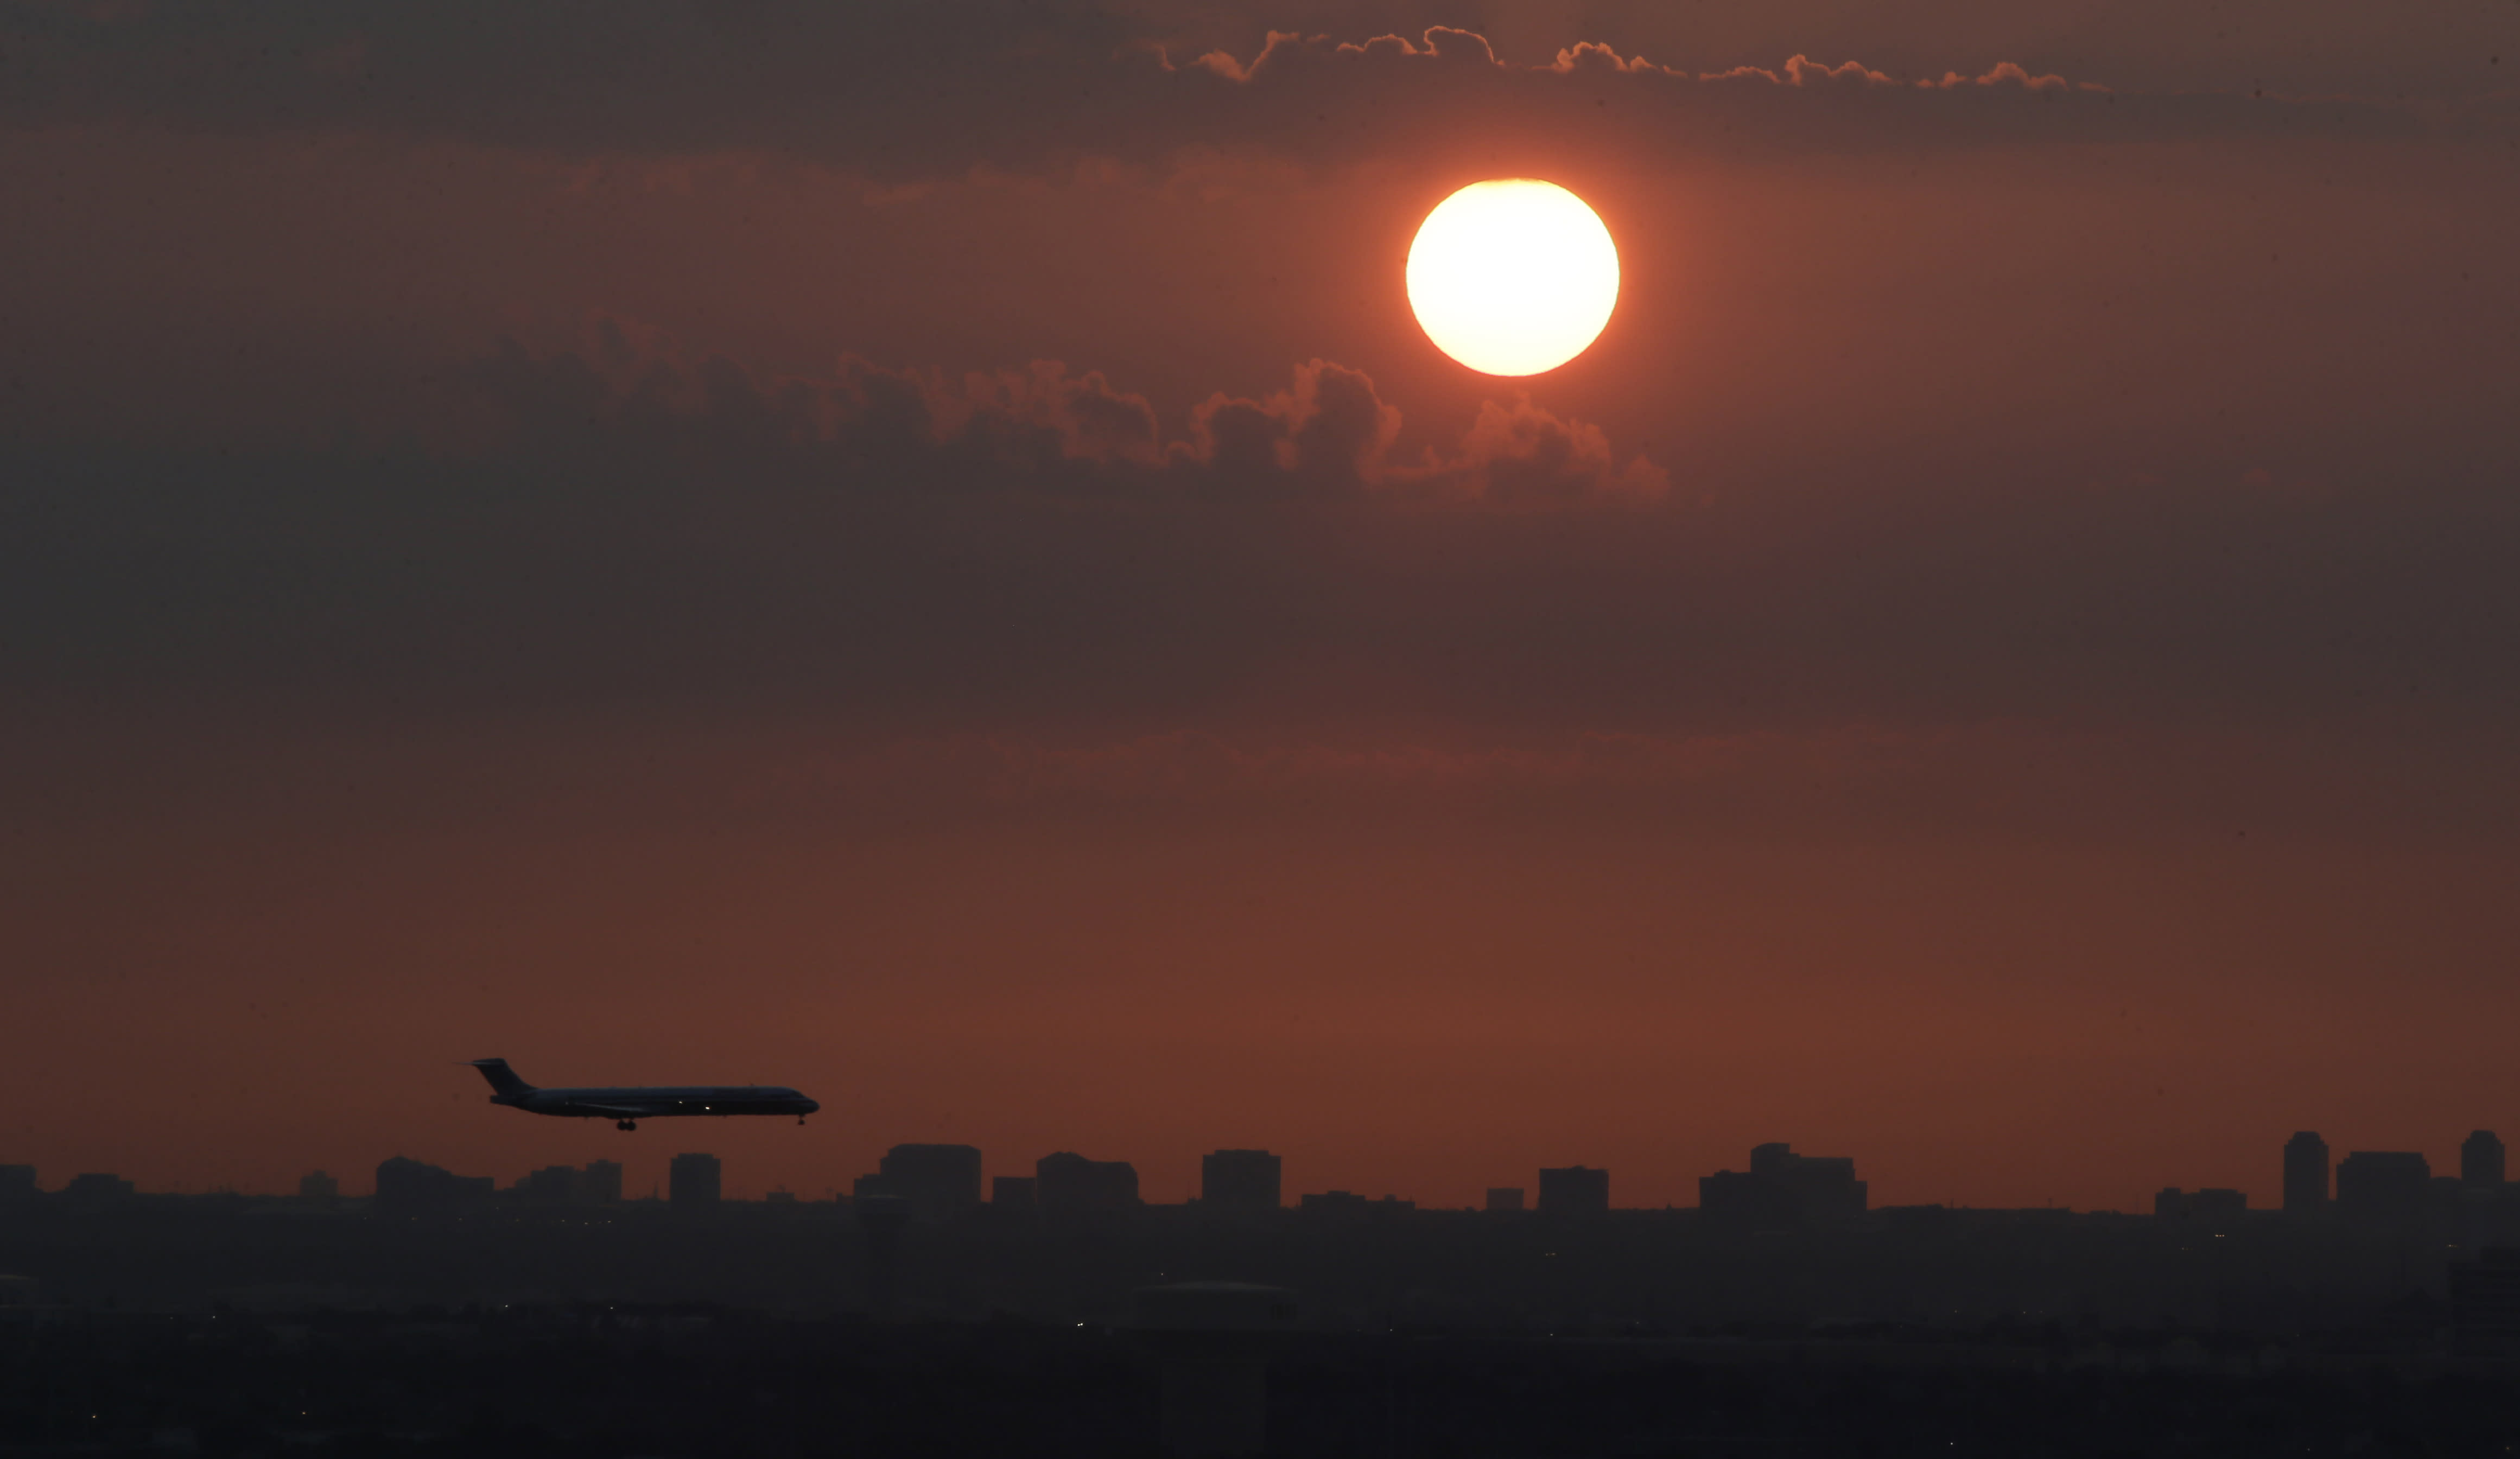 Labor Day flying: behind the scenes at a very busy airport